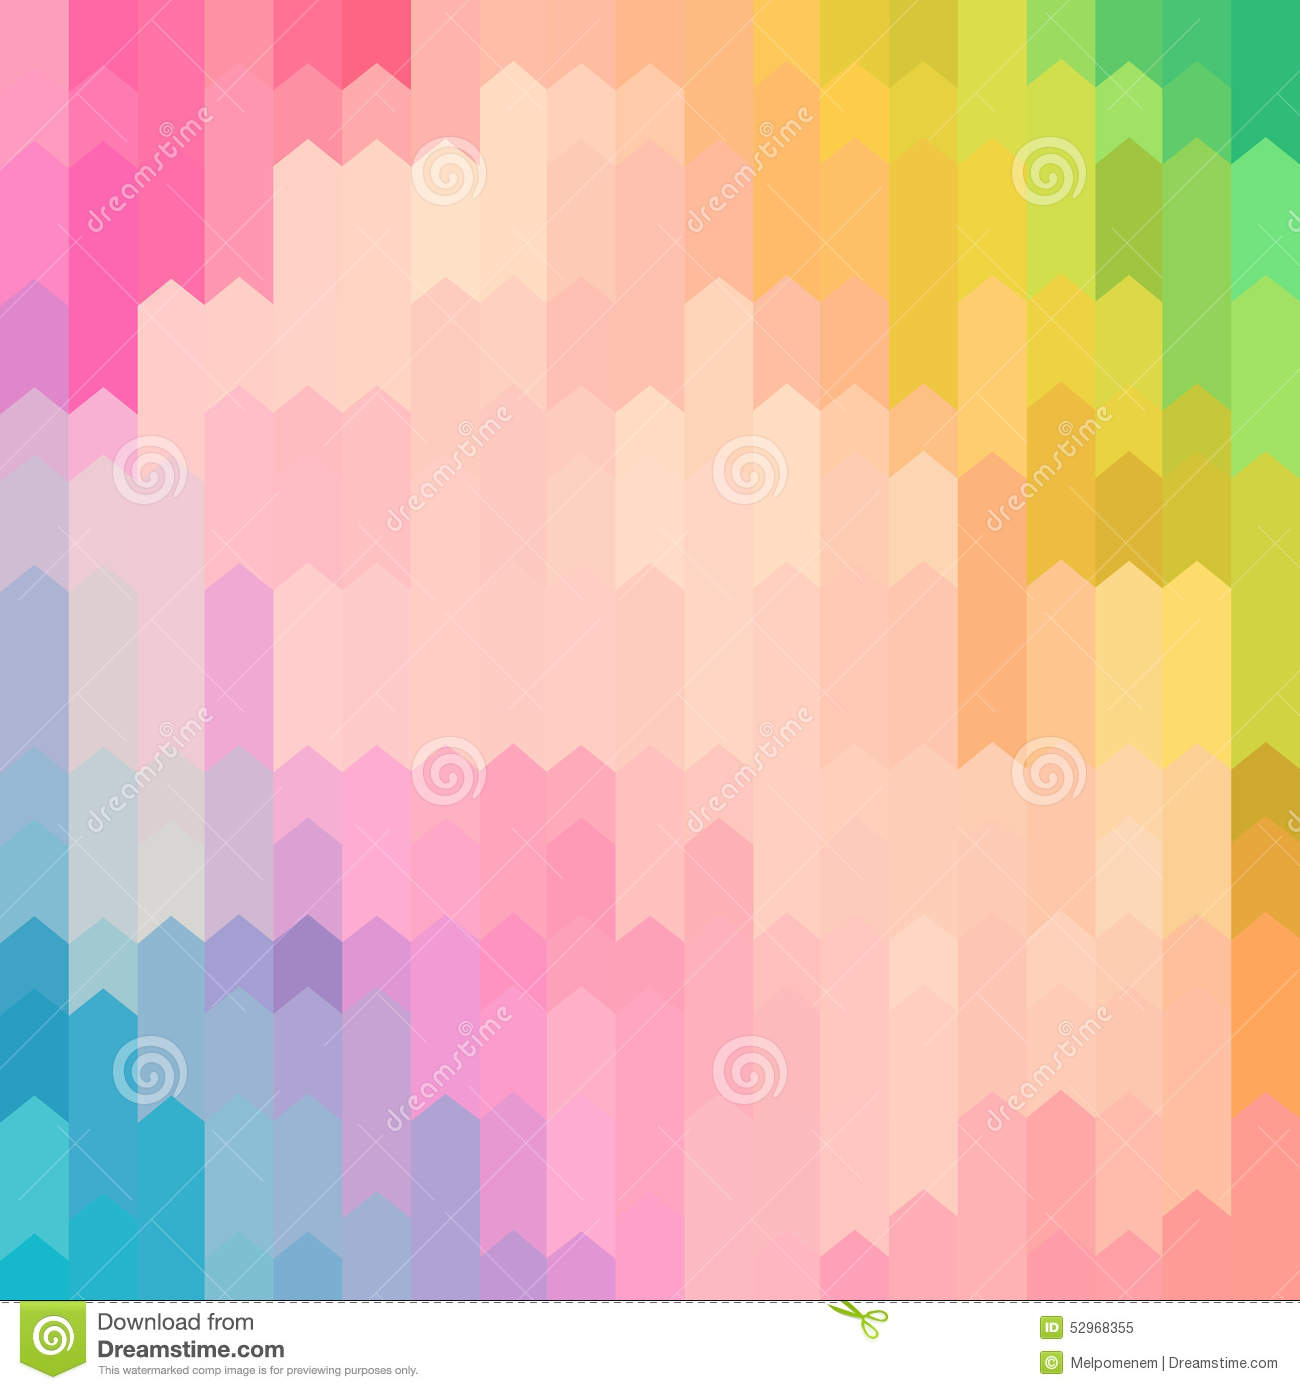 Best Blue Paint For Bedroom Pastel Colored Abstract Arrow Pattern Background Stock